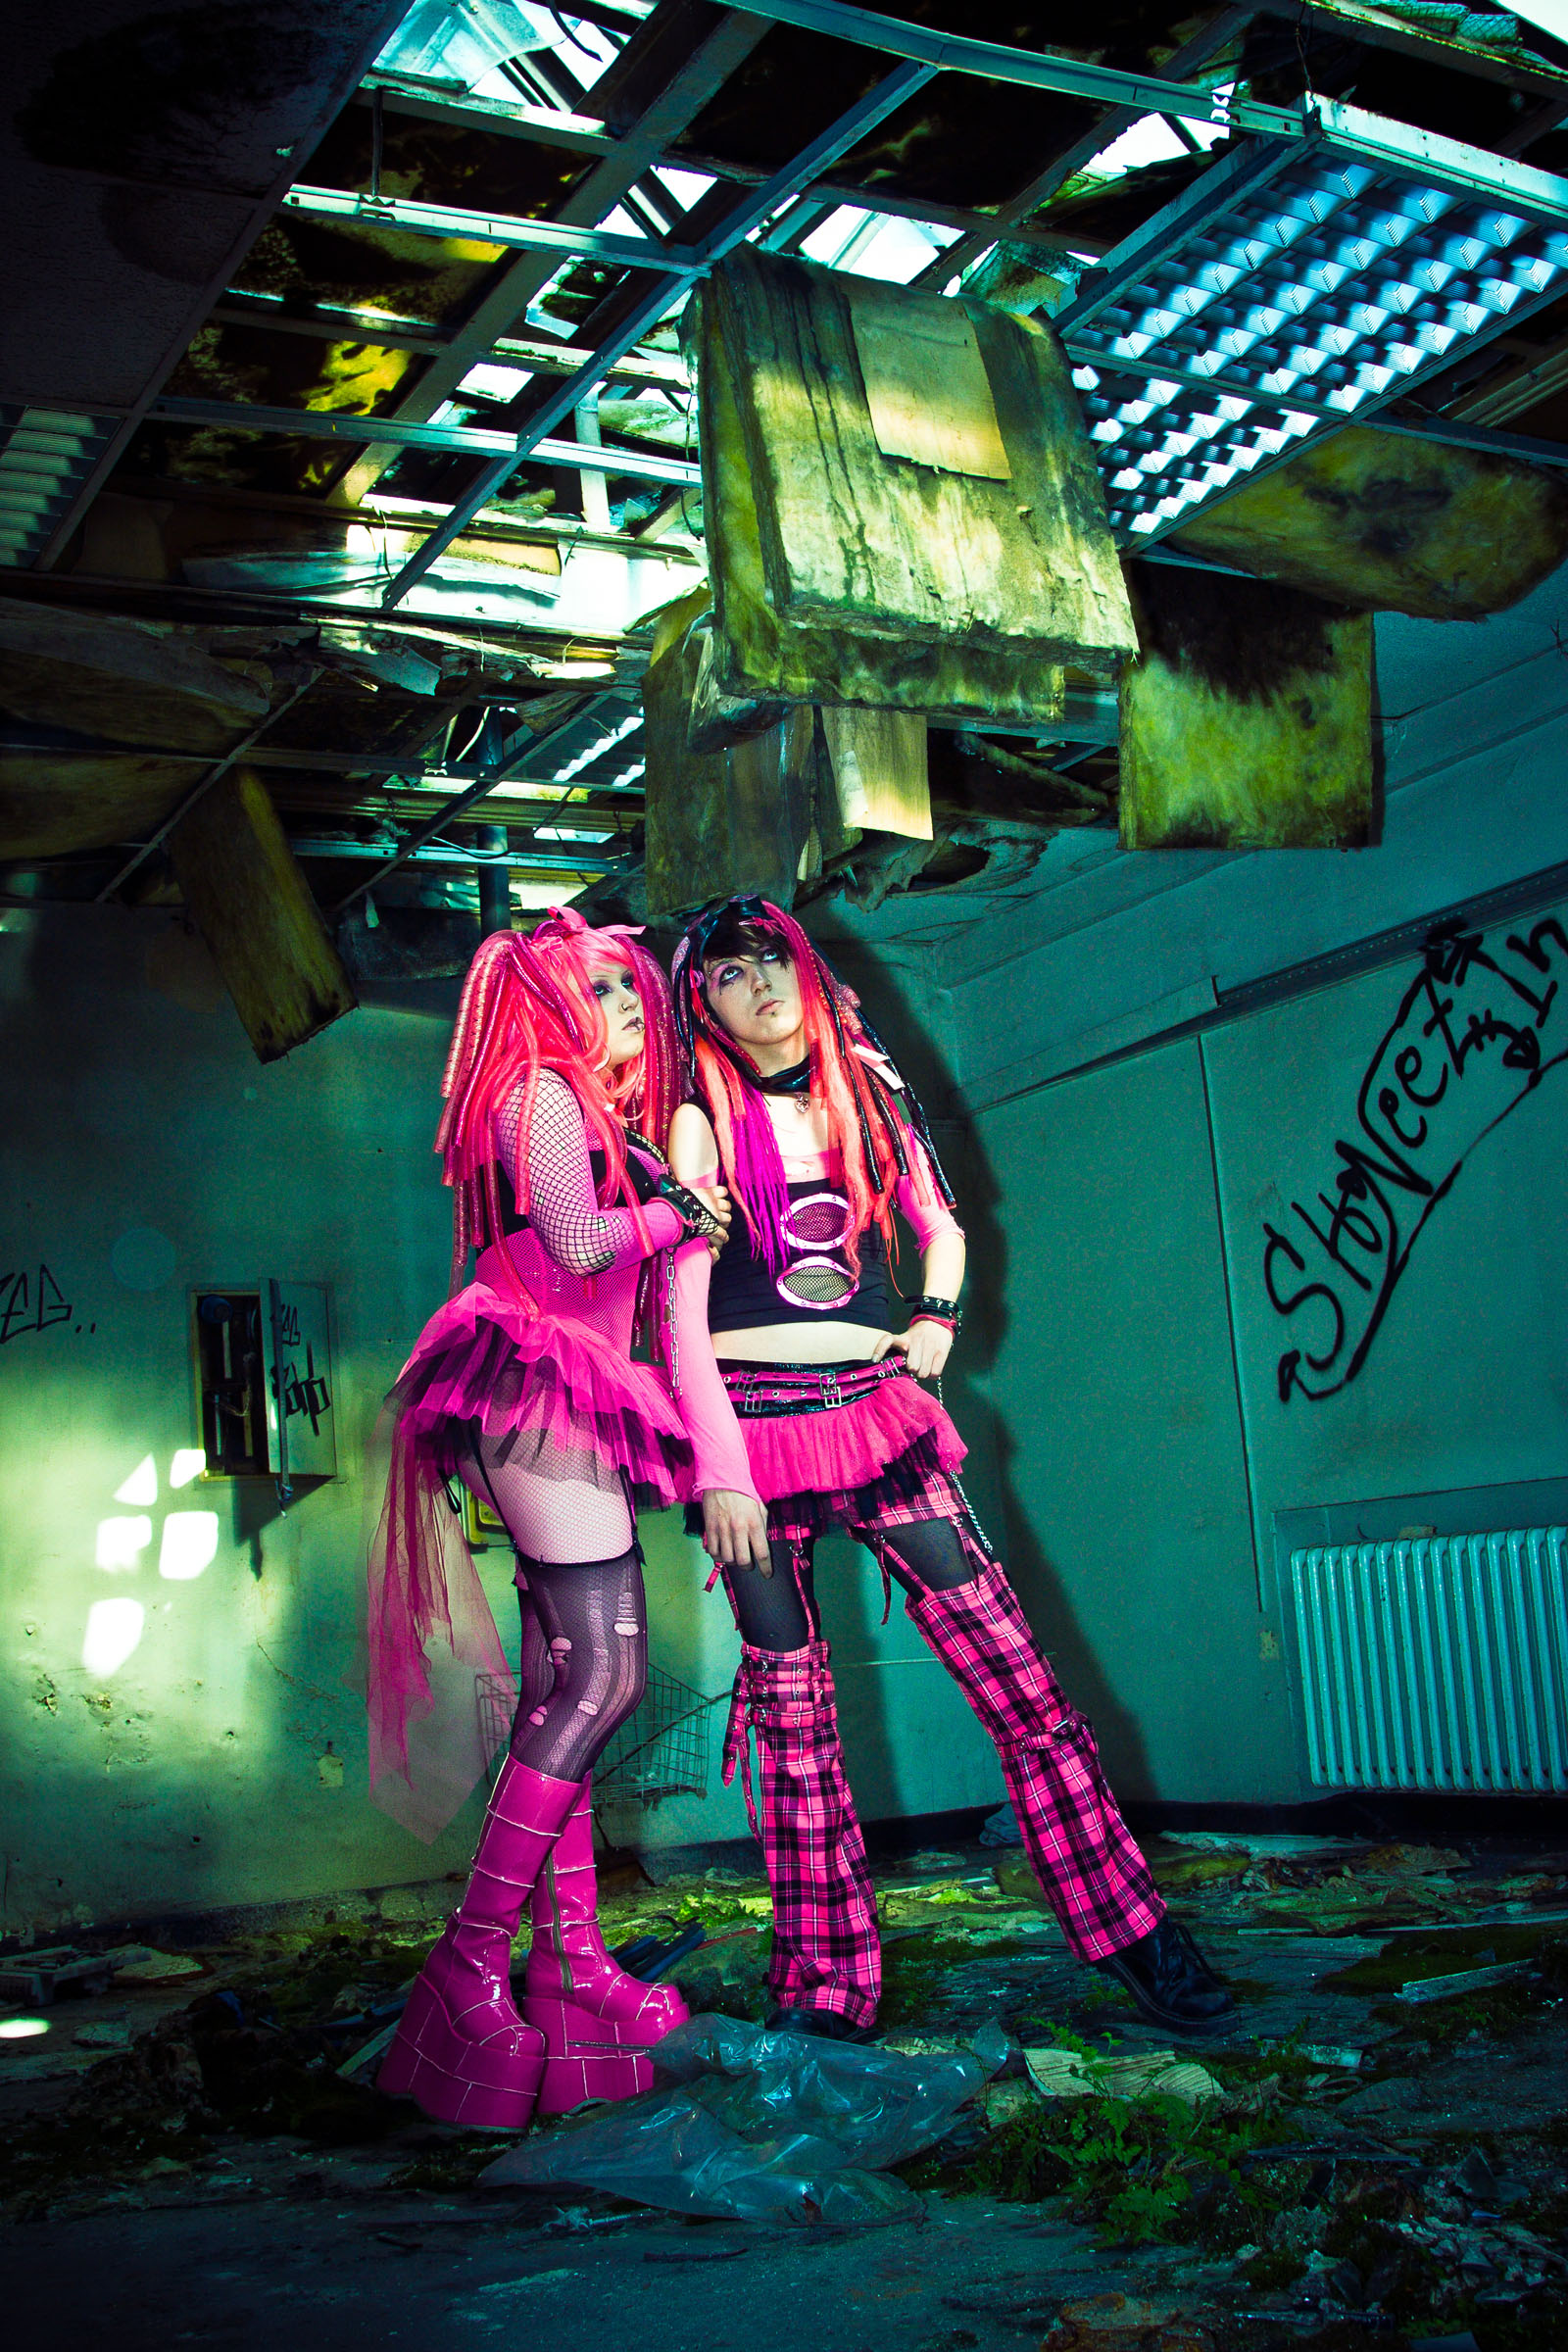 cybergoth_fotos3